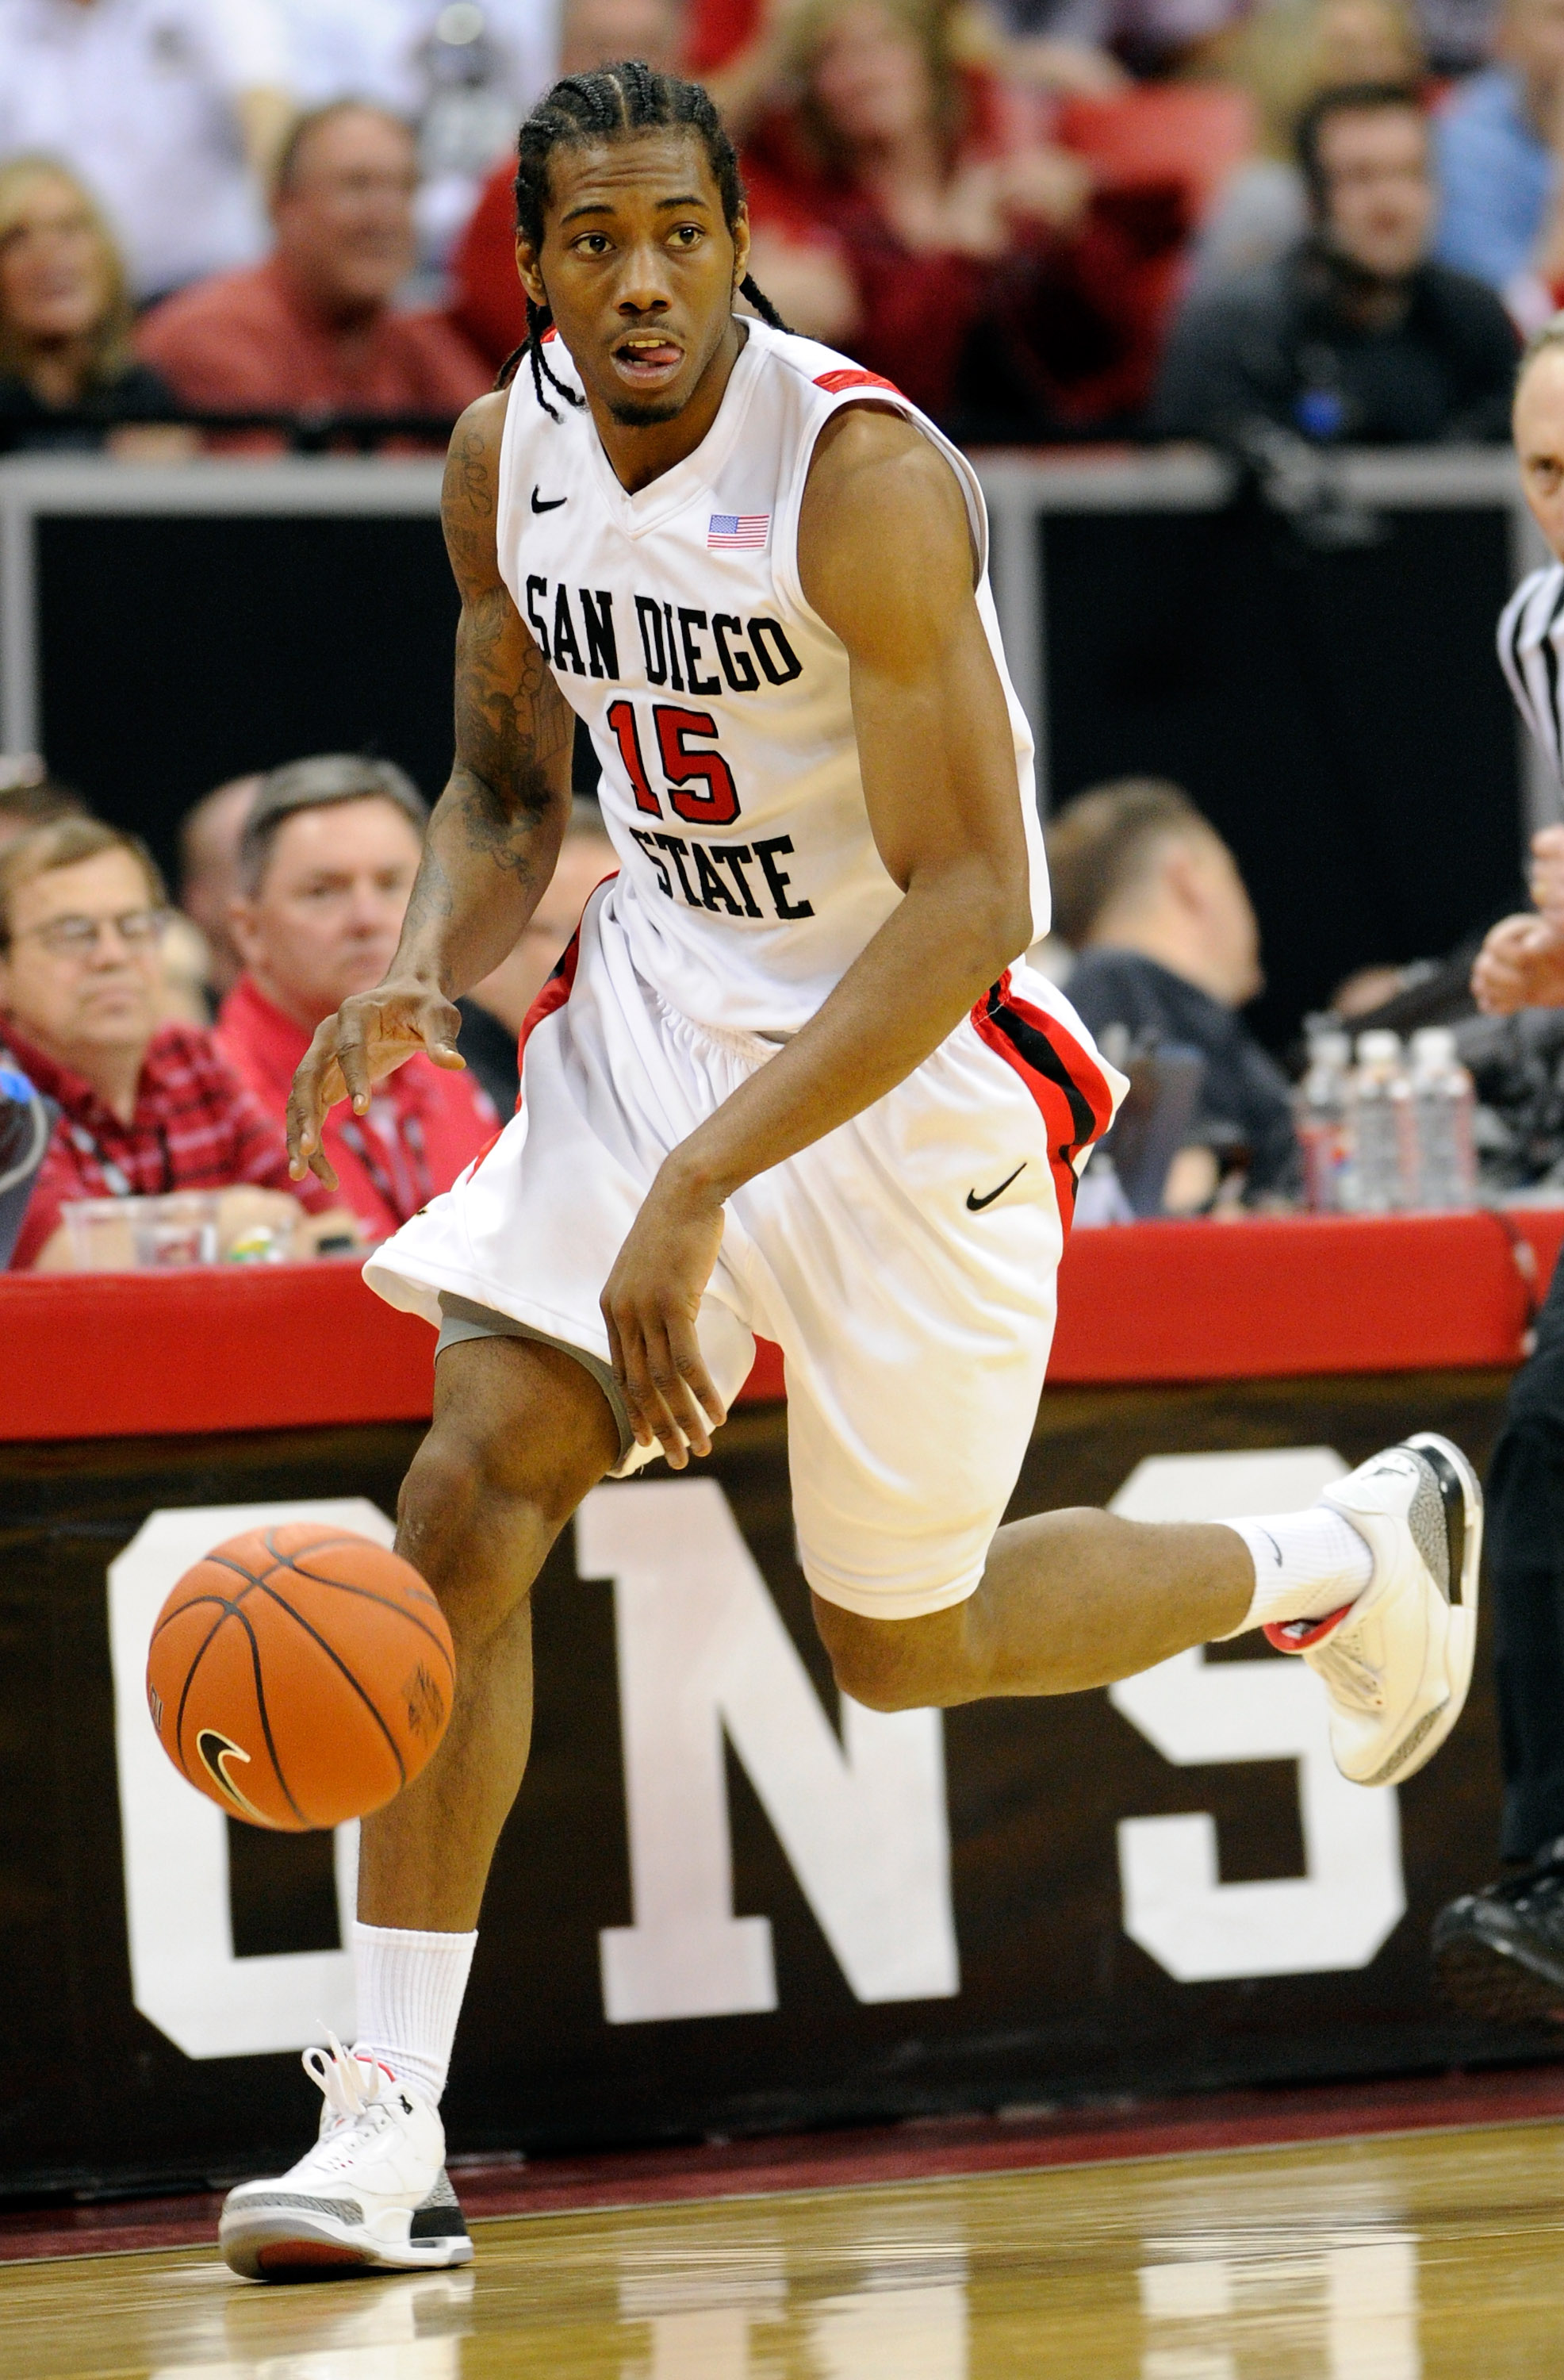 LAS VEGAS, NV - MARCH 10:  Kawhi Leonard #15 of the San Diego State Aztecs brings the ball up the court during a quarterfinal game of the Conoco Mountain West Conference Basketball tournament against the Utah Utes at the Thomas & Mack Center March 10, 201